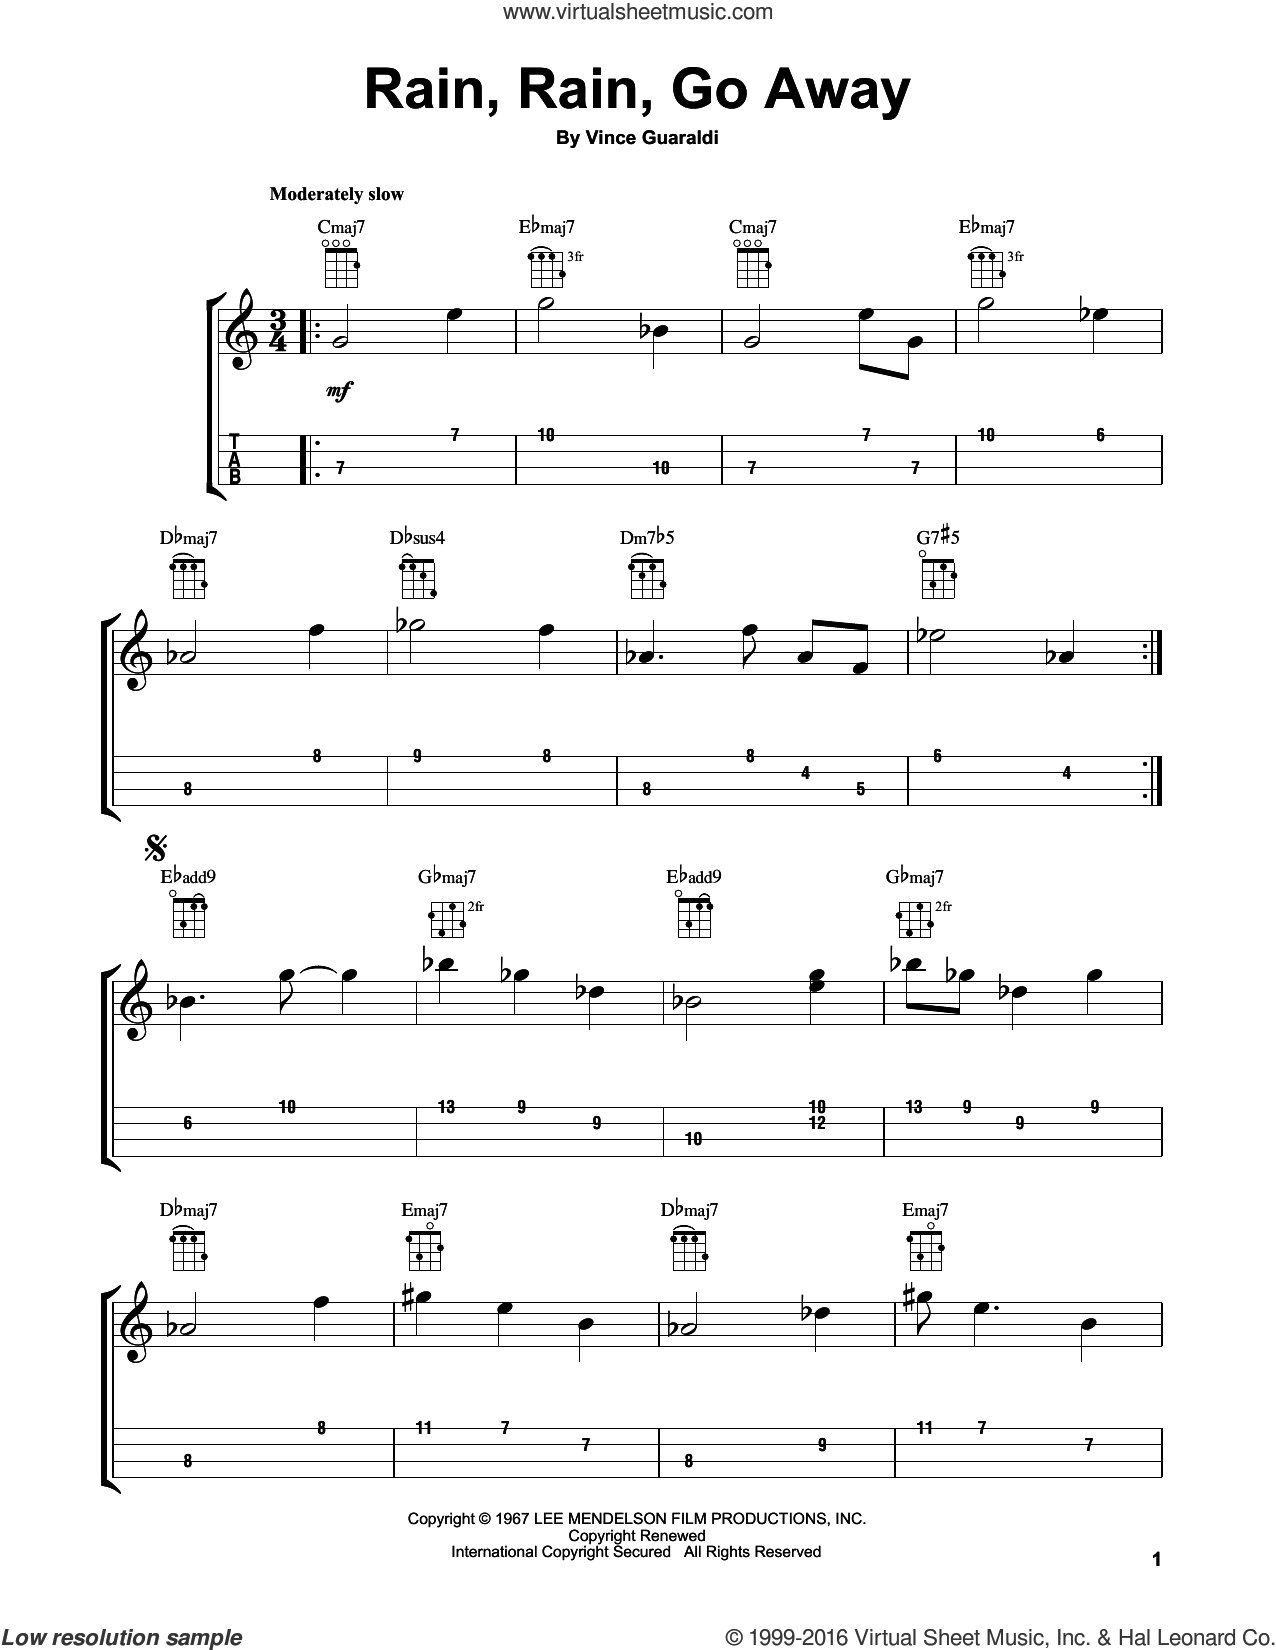 Rain, Rain, Go Away sheet music for ukulele by Vince Guaraldi, intermediate skill level